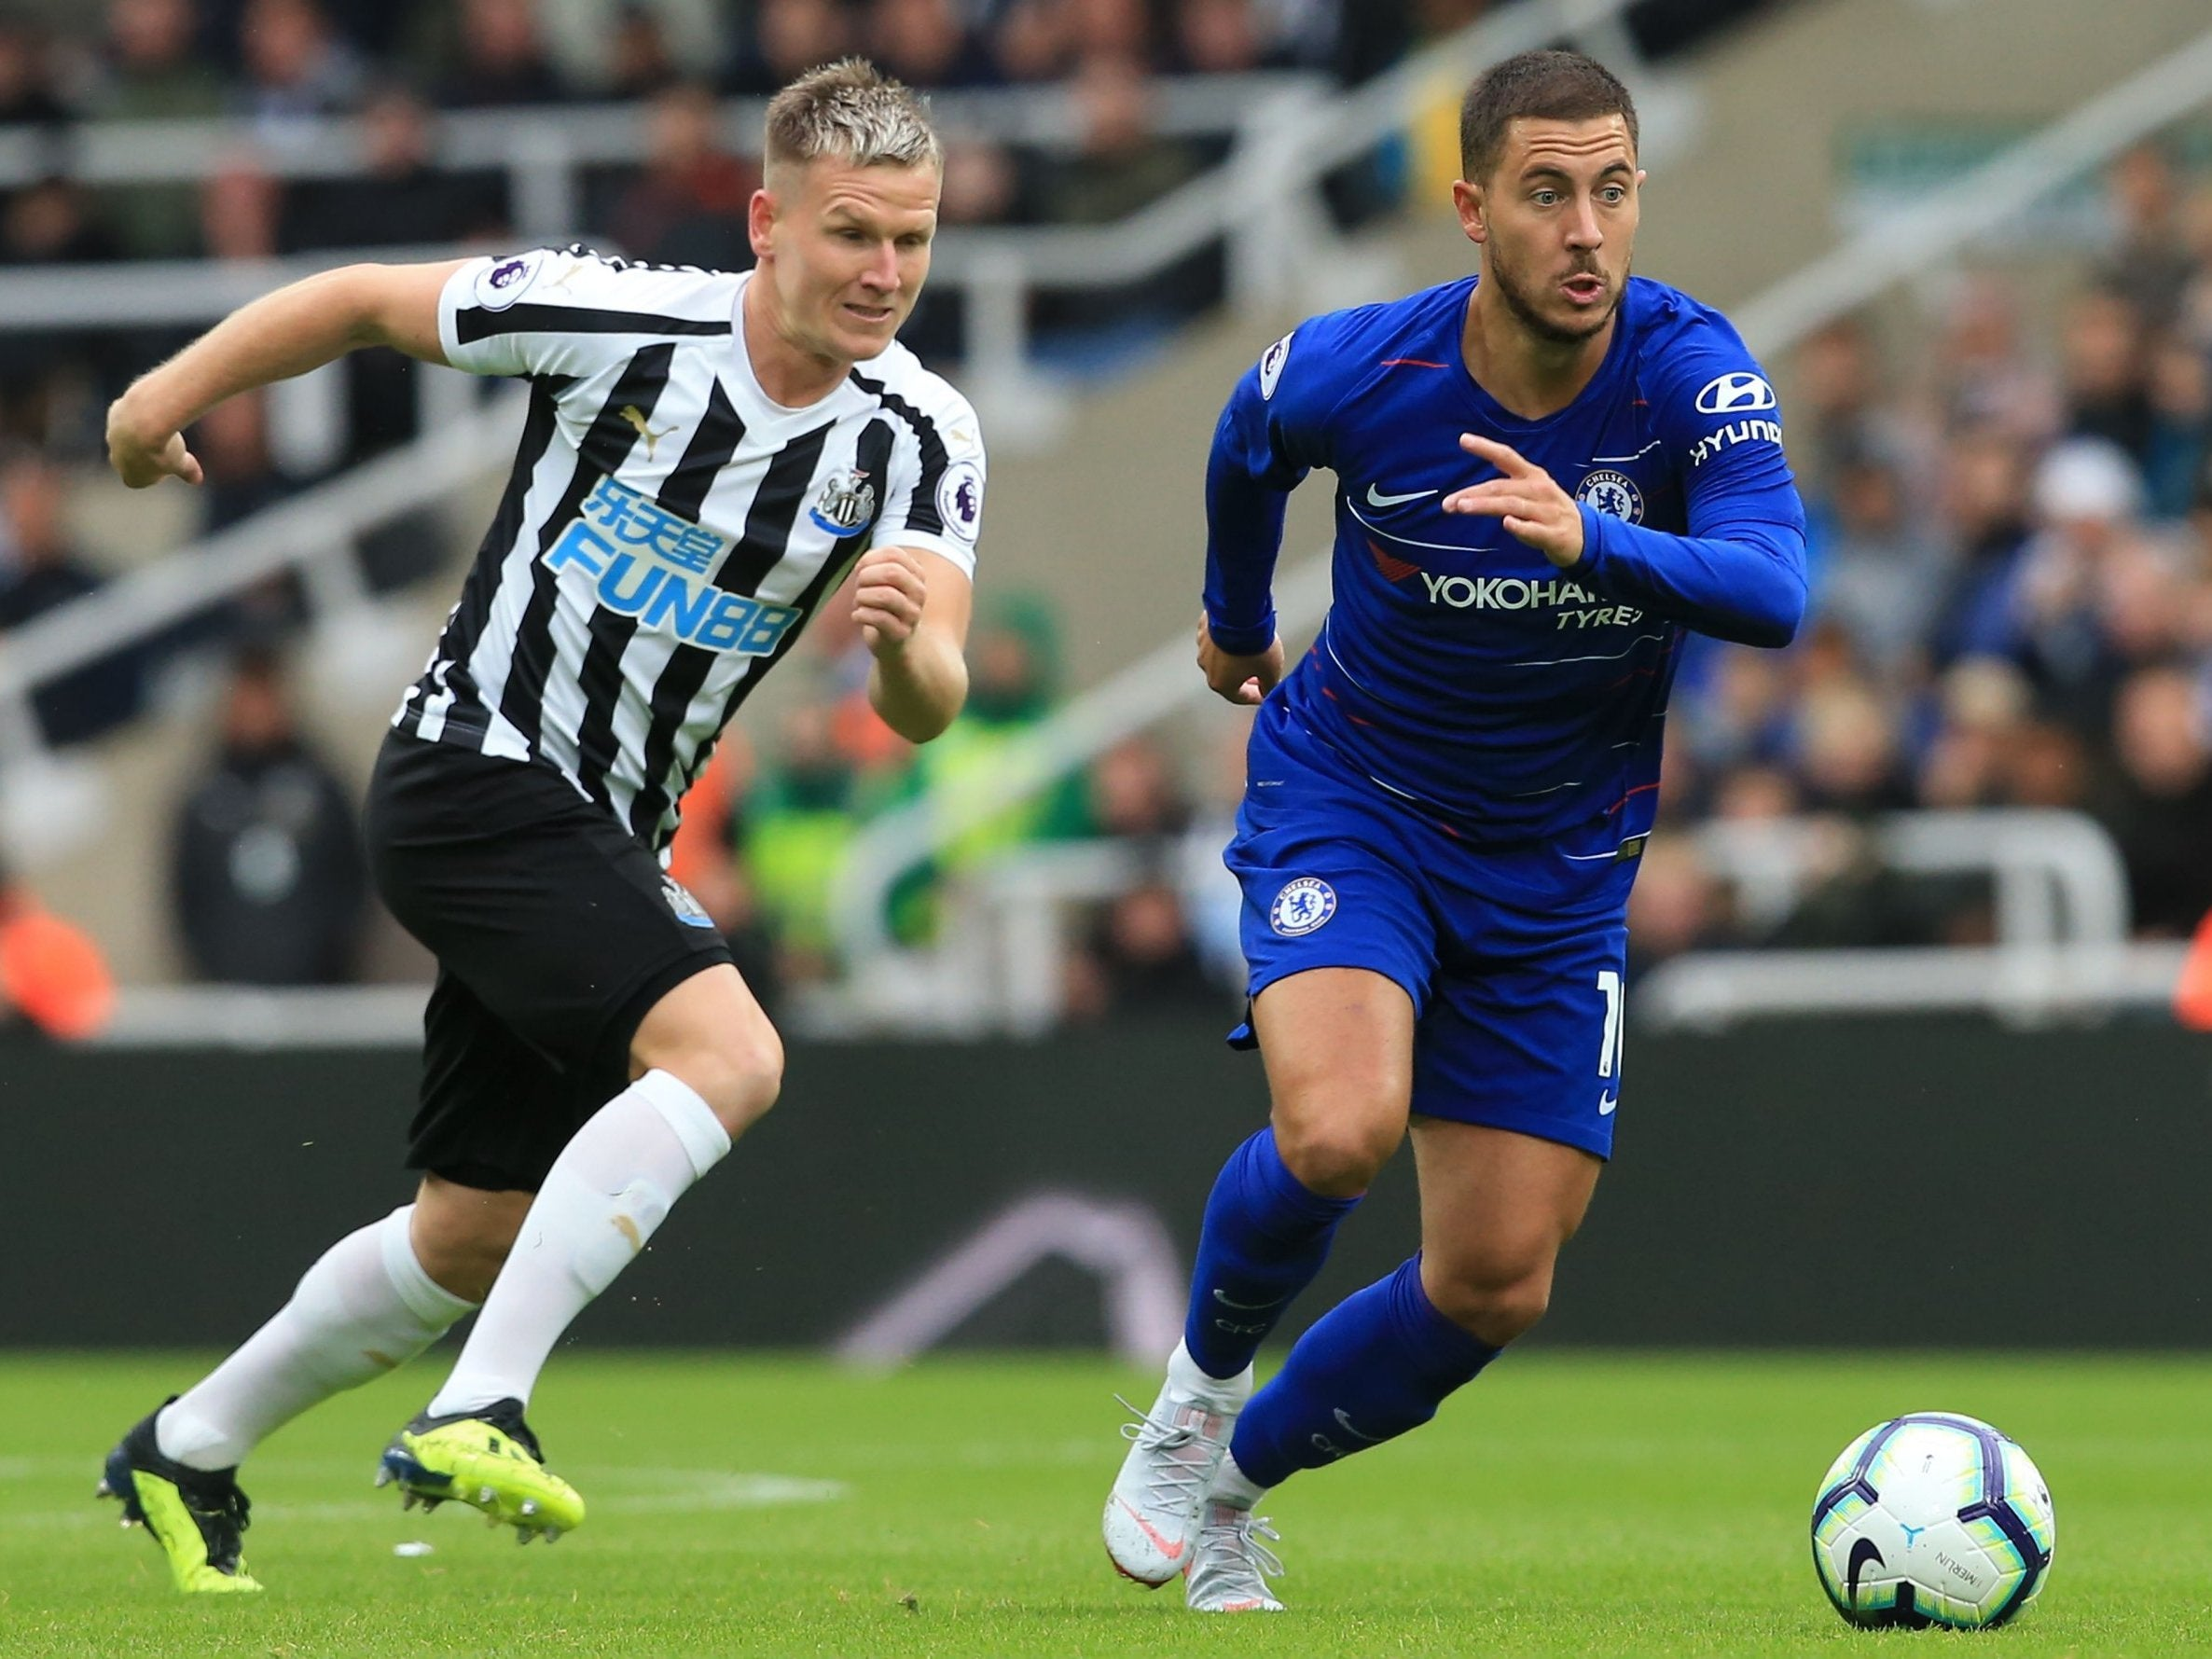 Newcastle vs Chelsea – LIVE: Latest score, goals and updates plus prediction, how to watch online, team news, line-ups, head-to-head, odds and more